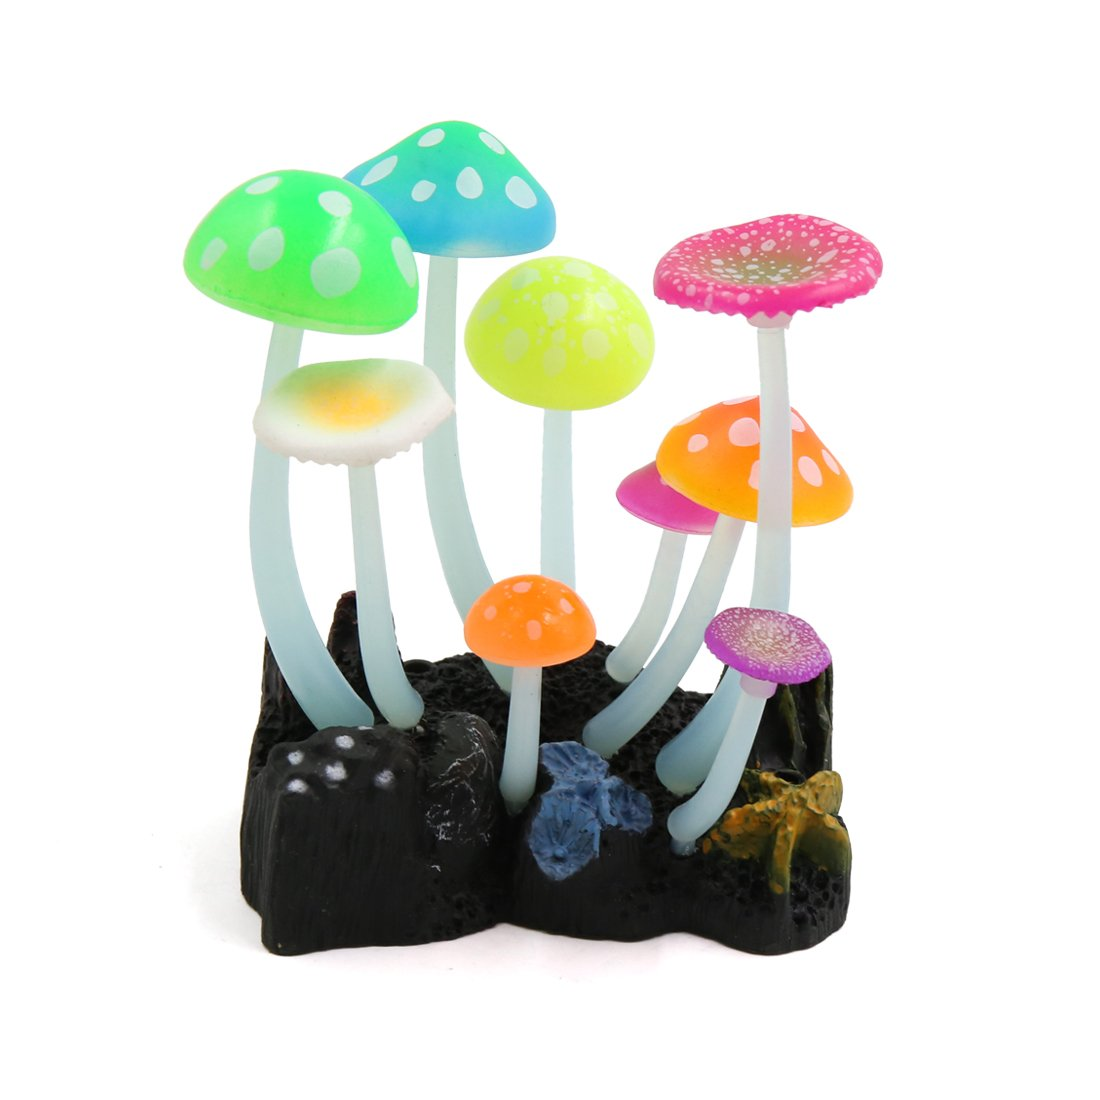 uxcell Silicone Thick Stems Glowing Effect Mushrooms Stone Decor for Aquarium Fish Tank